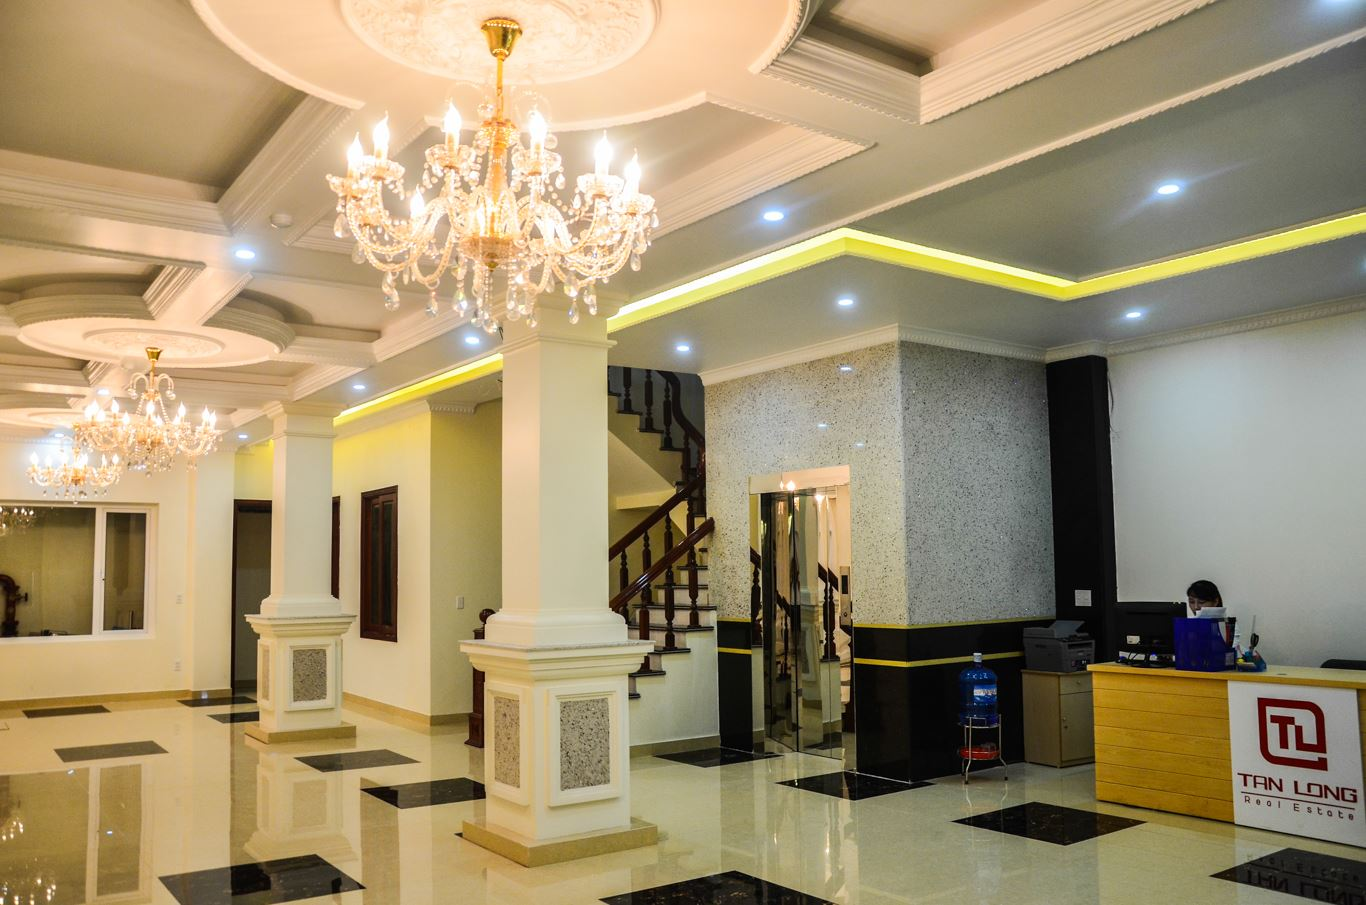 Updated list of apartment/flat near Big C Hai Phong